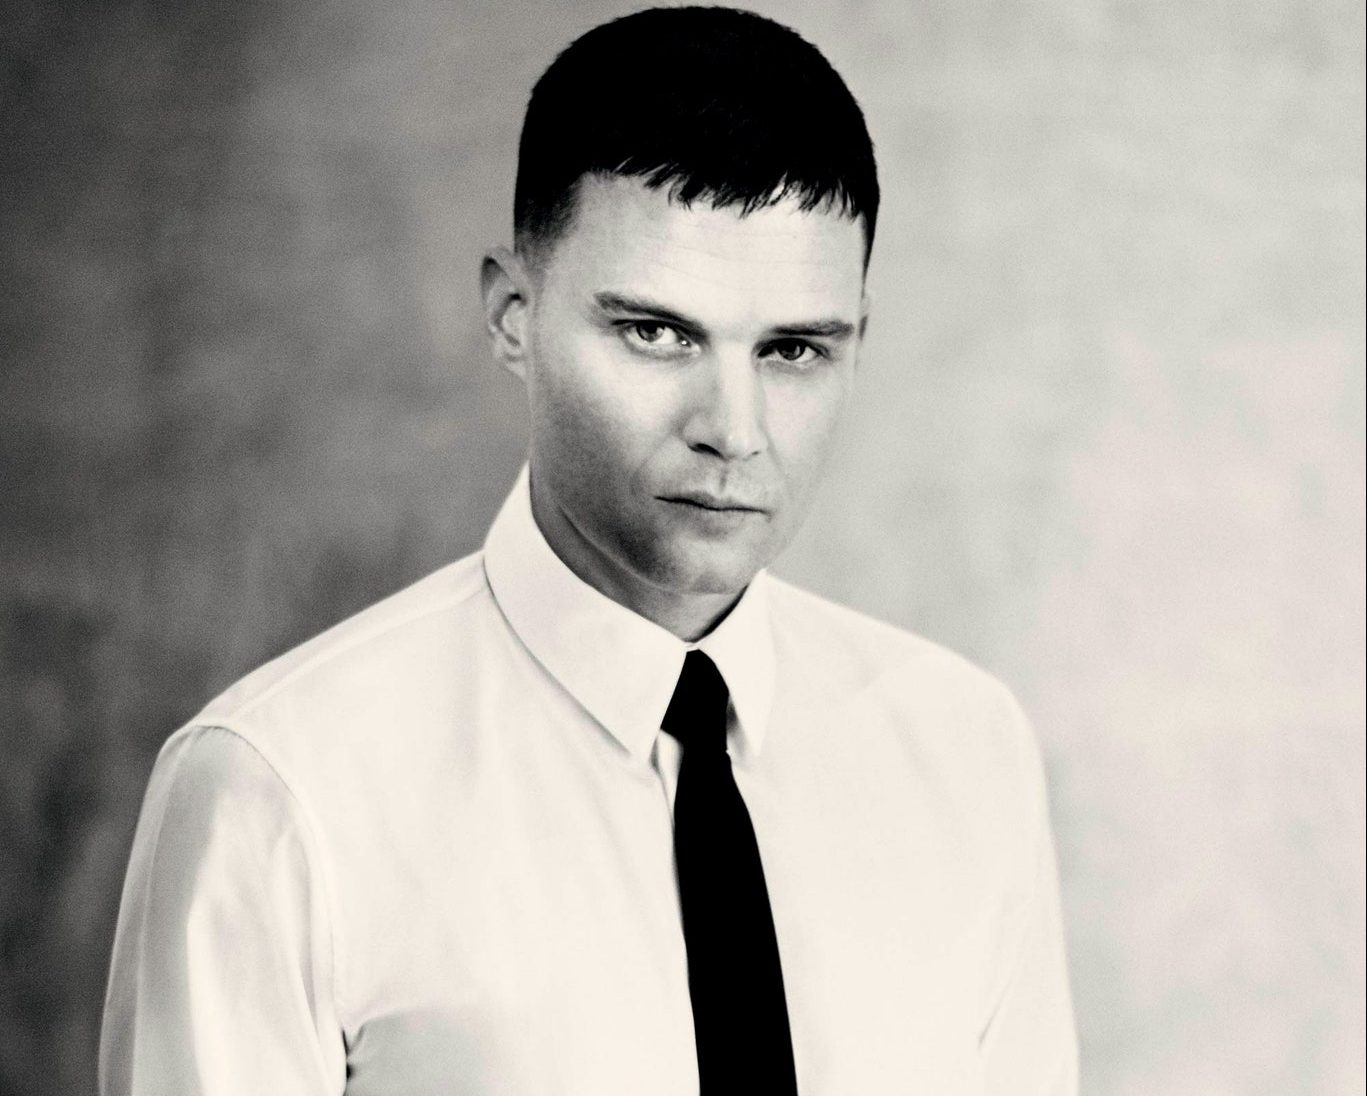 Givenchy Appoints Matthew Williams as New Creative Director Givenchy Appoints Matthew Williams as New Creative Director Vanity Teen 虚荣青年 Menswear & new faces magazine